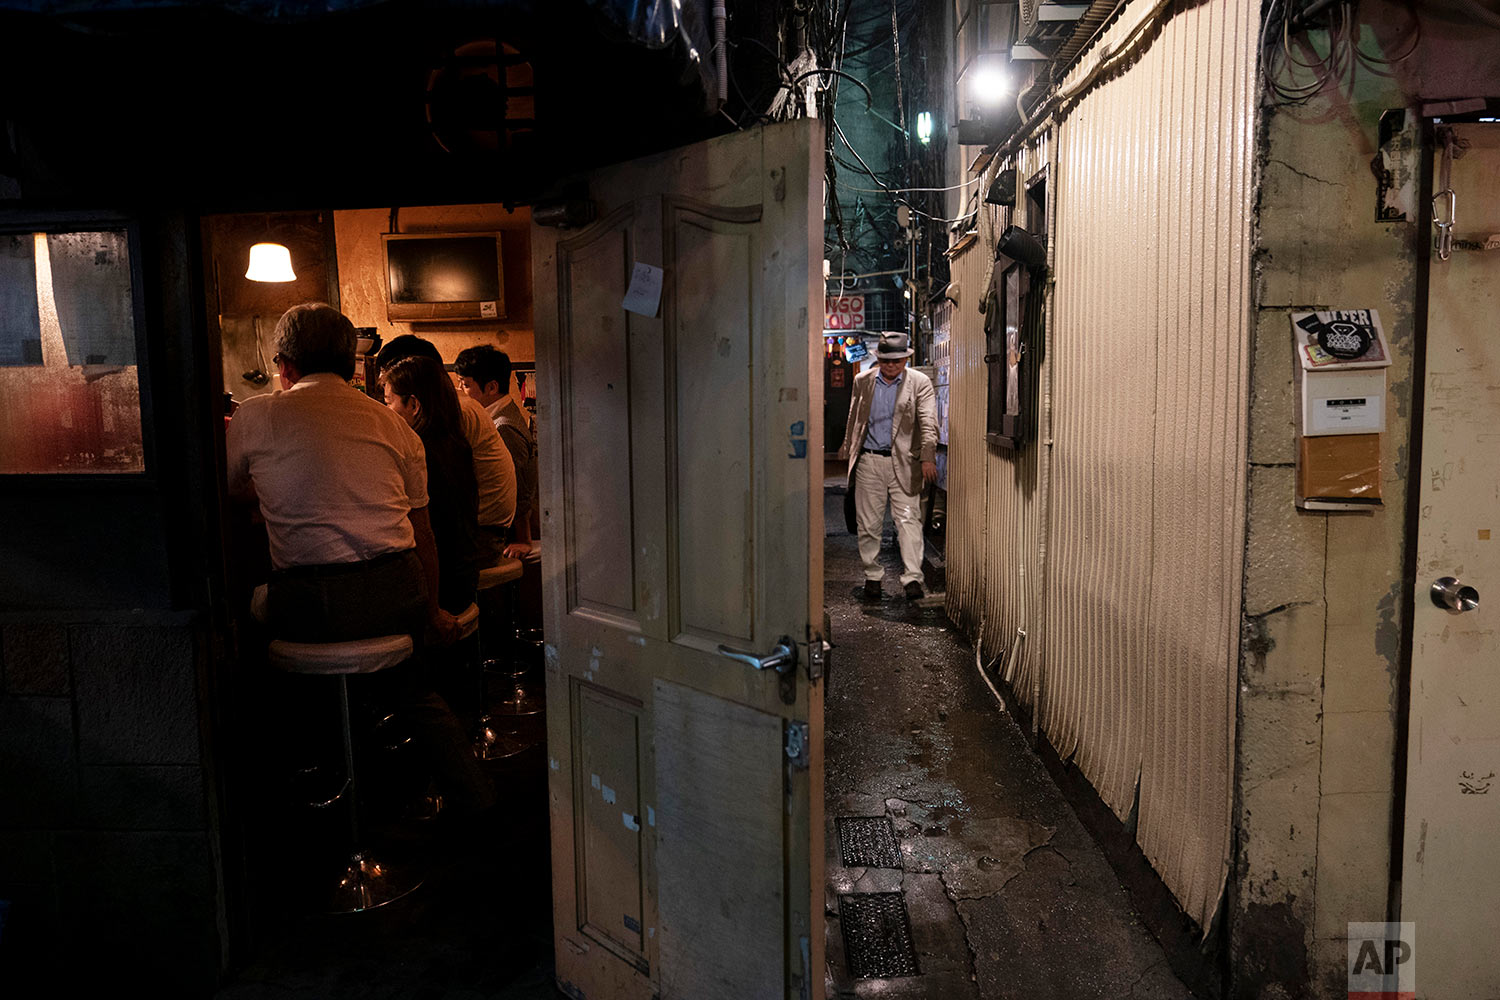 A man makes his way through a narrow passageway between two buildings at the Golden Gai in the Shinjuku district of Tokyo, July 17, 2019. (AP Photo/Jae C. Hong)